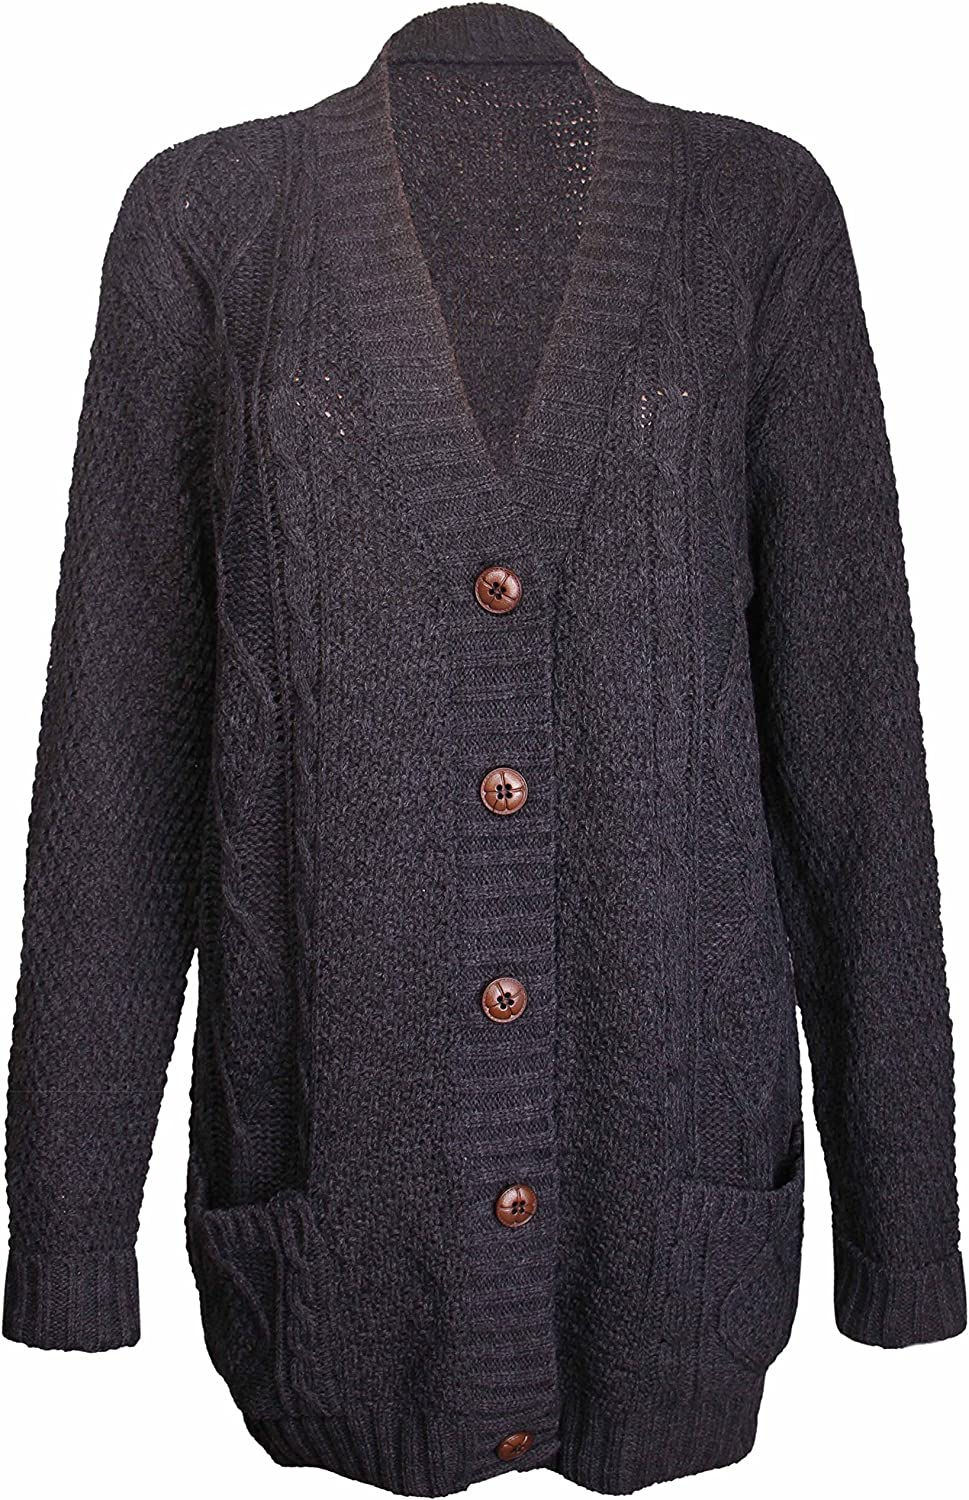 Ladies Sleeveless Cable Knitted Button Sweater Womens Grandad Winter Cardigan